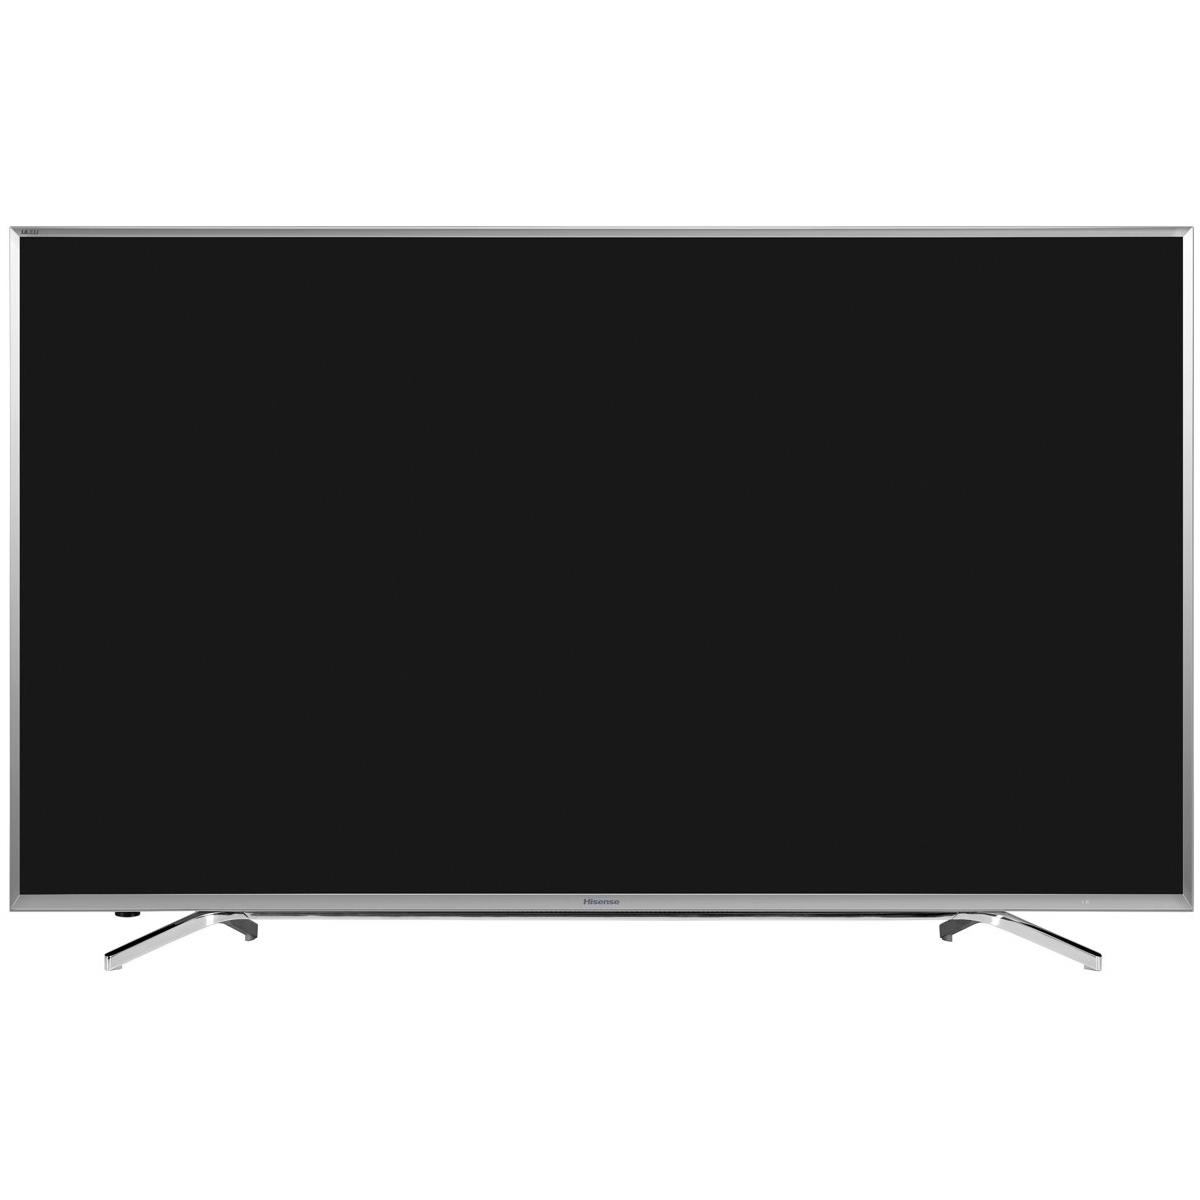 Hisense TV, Audio & Electronics